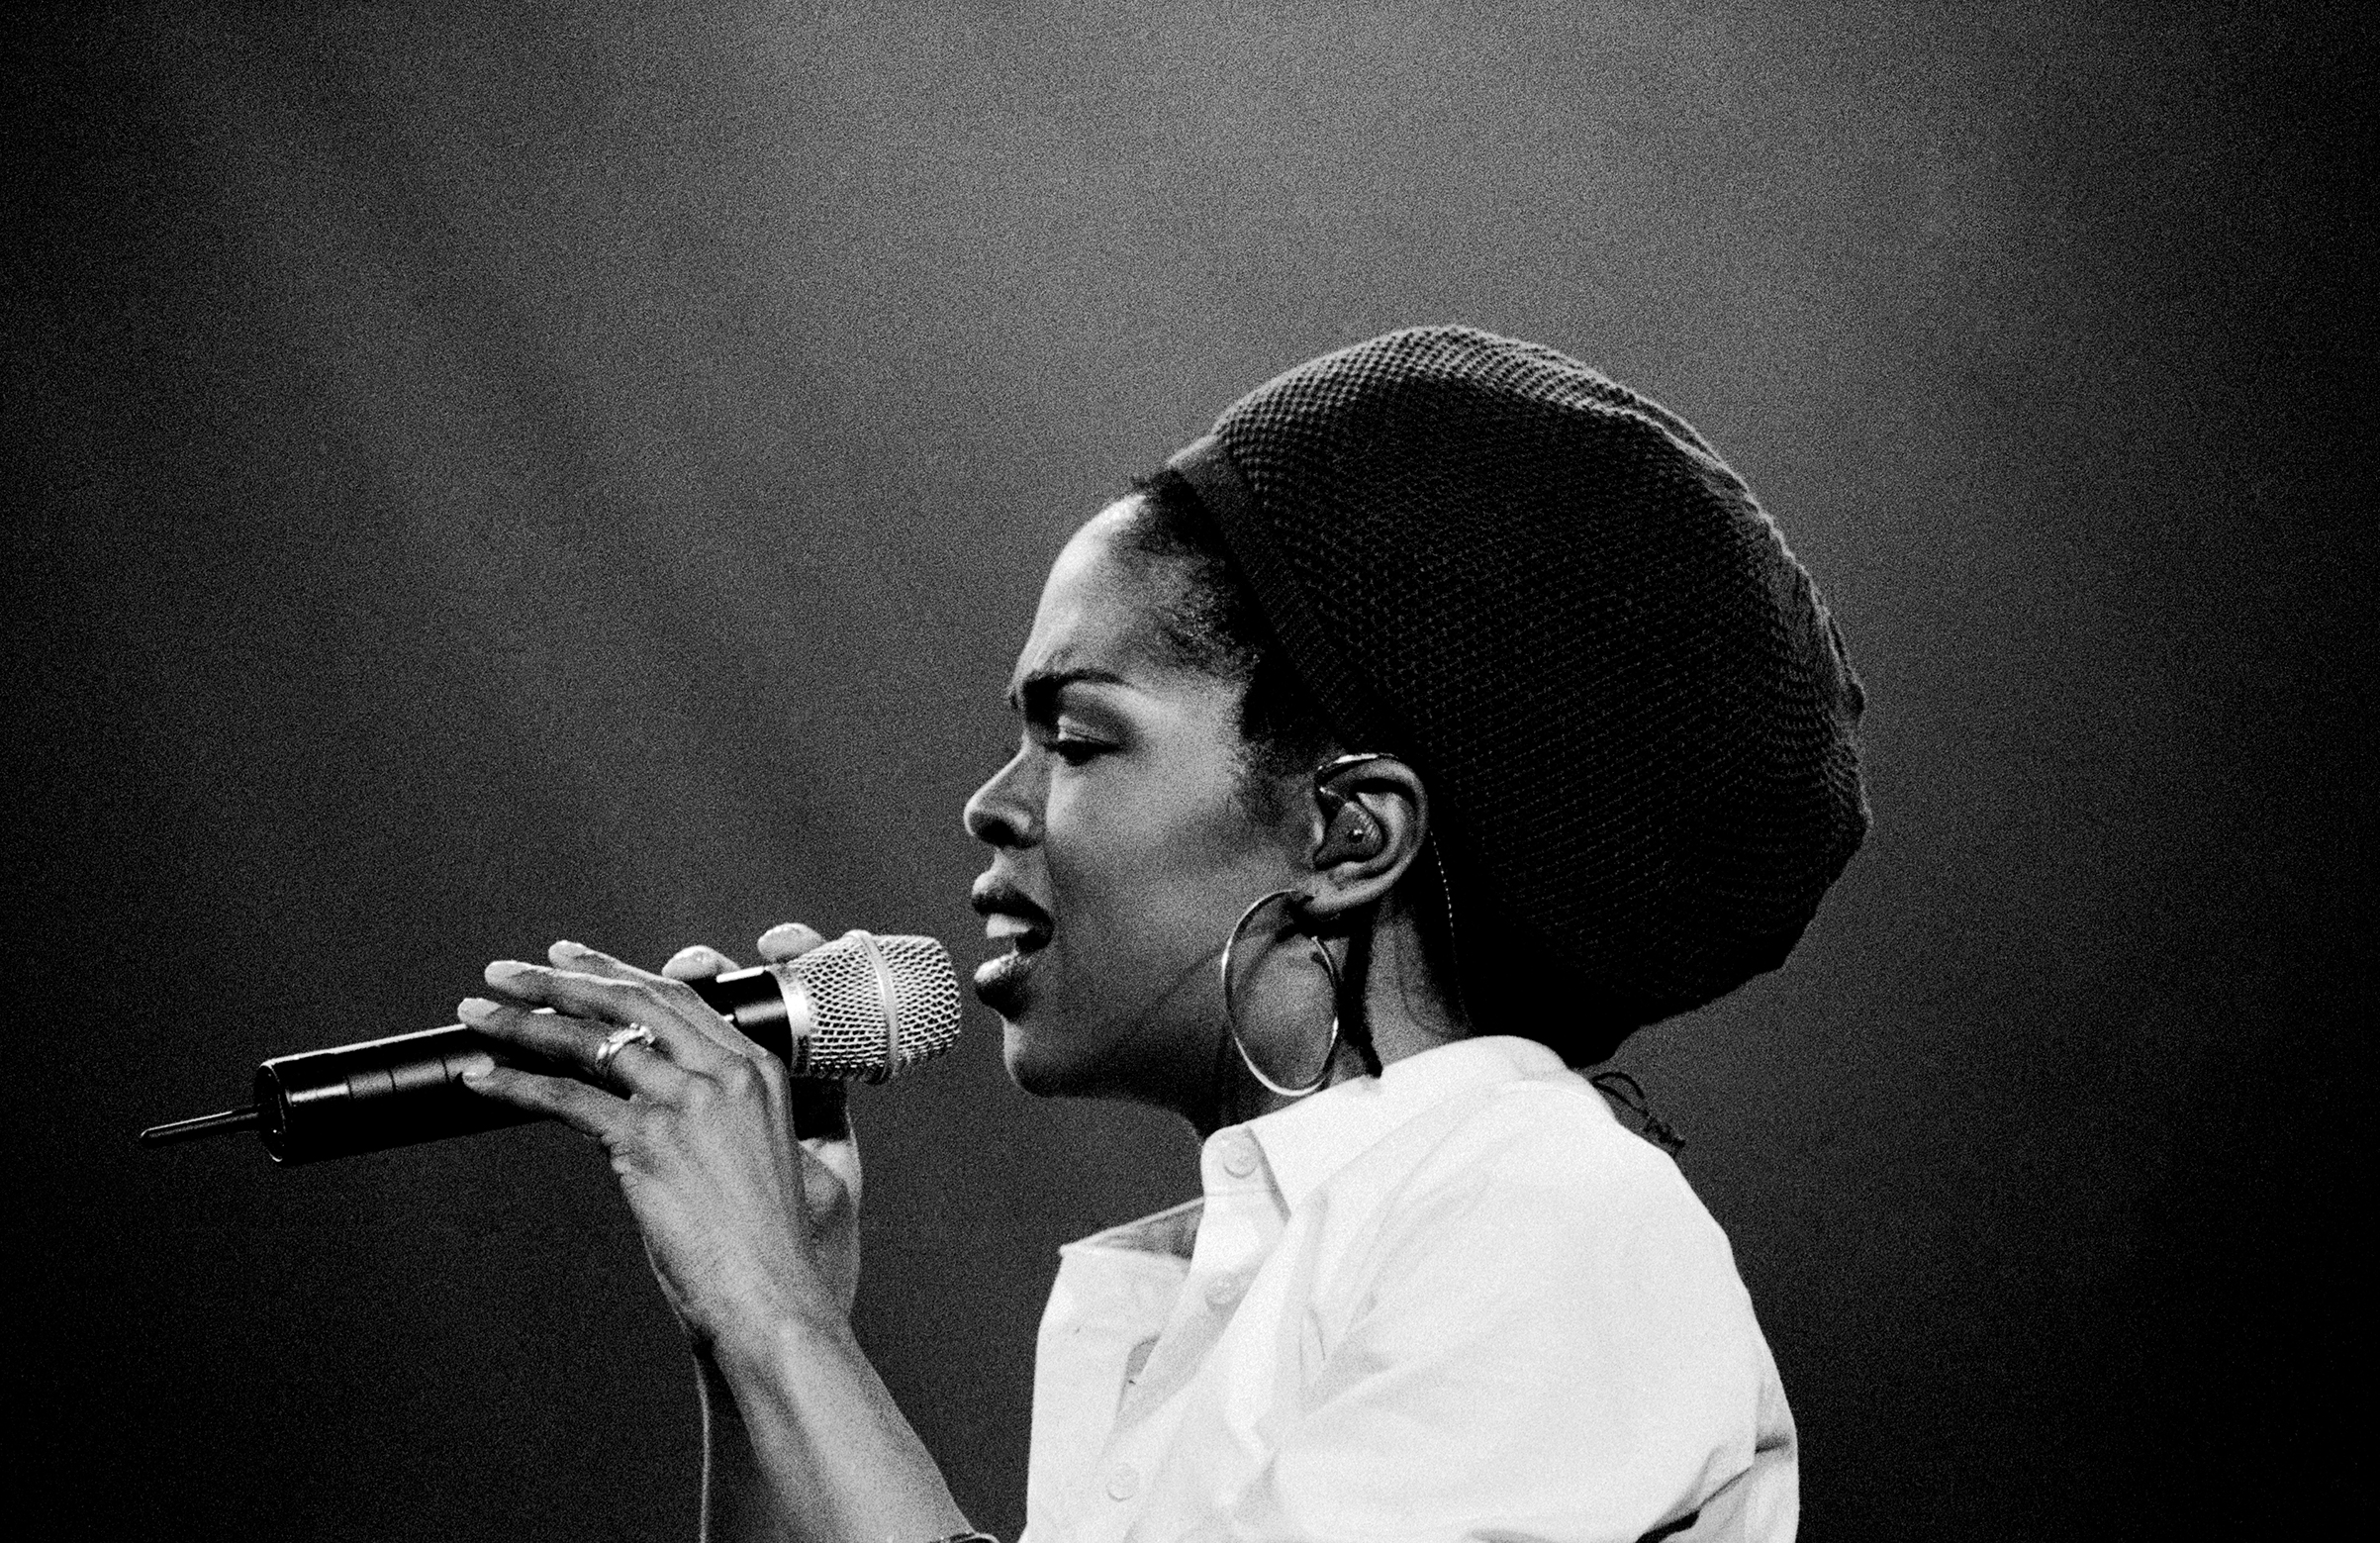 Lauryn Hill performing at Brixton Academy during the Miseducation of Lauryn Hill Tour in London on Feb 5, 1999.